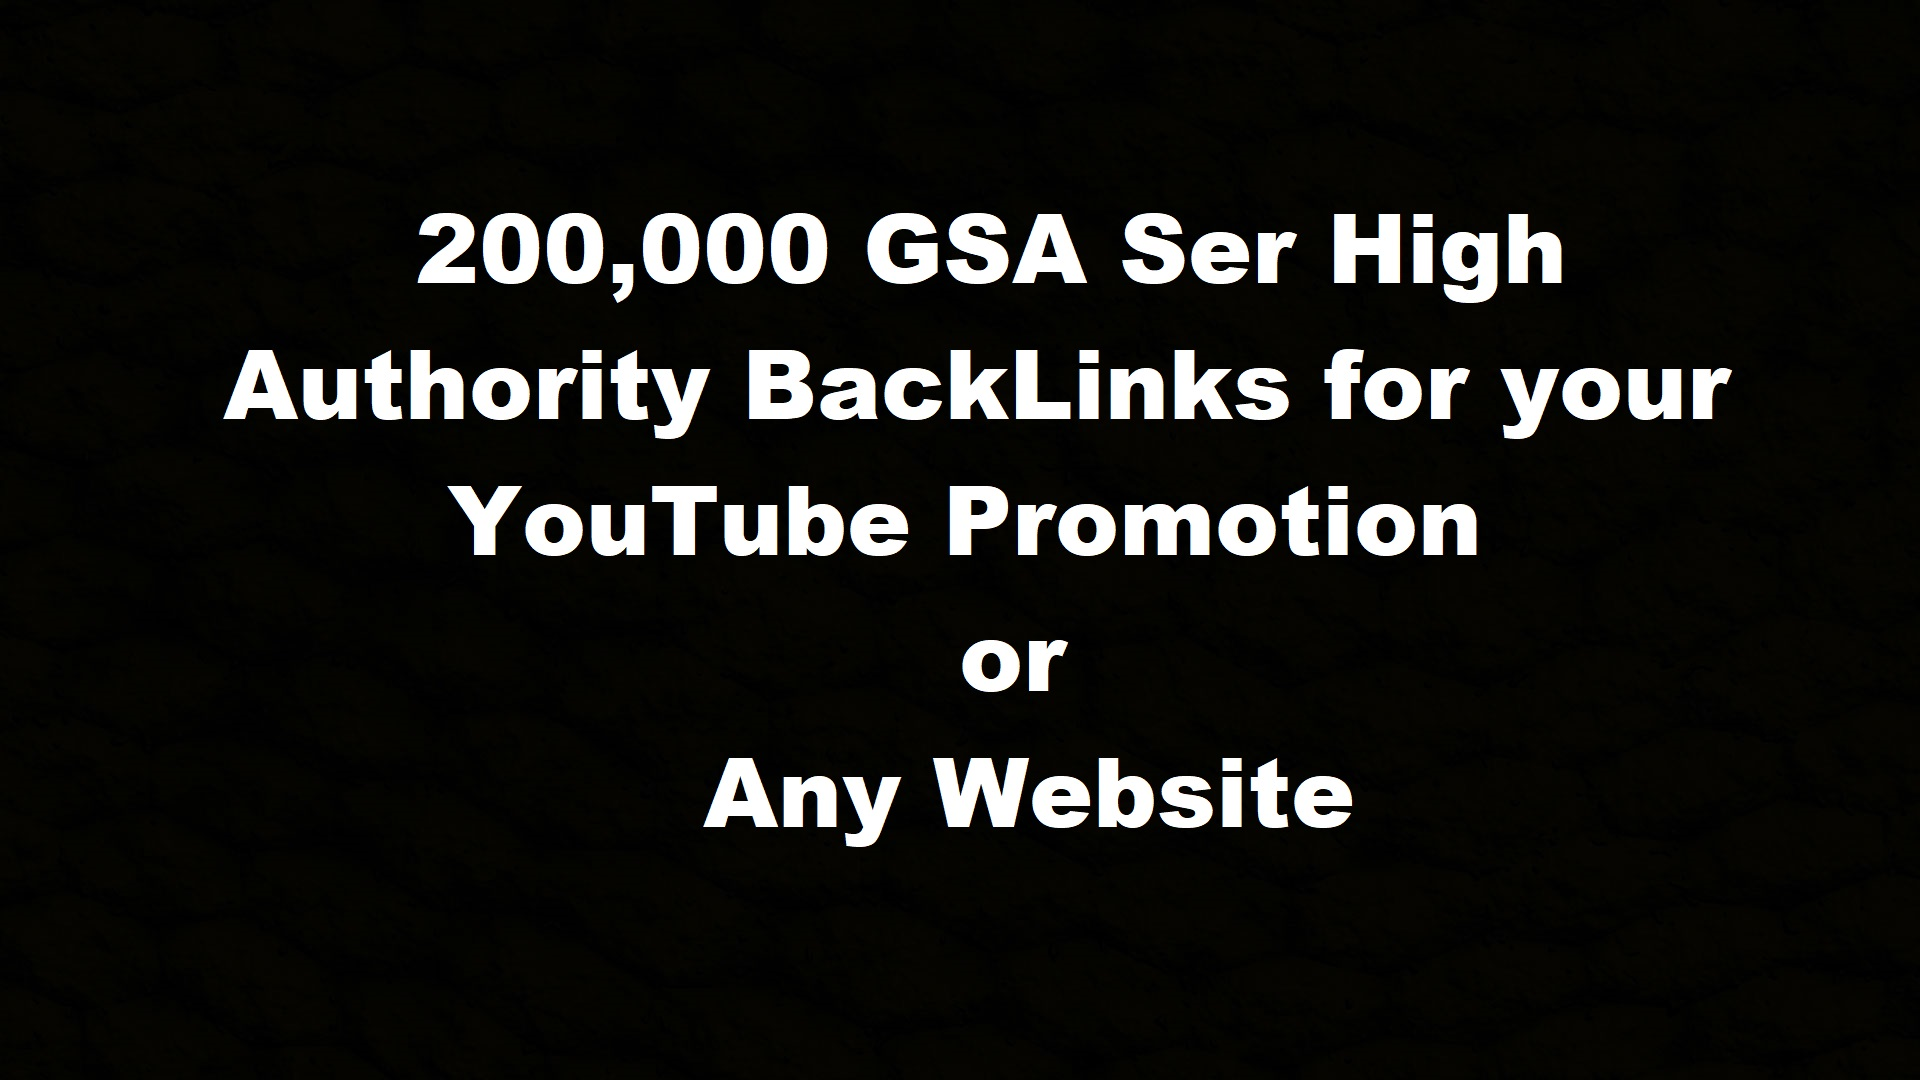 Provide 200K GSA Ser High Authority BackLinks for your YouTube promotion or any website